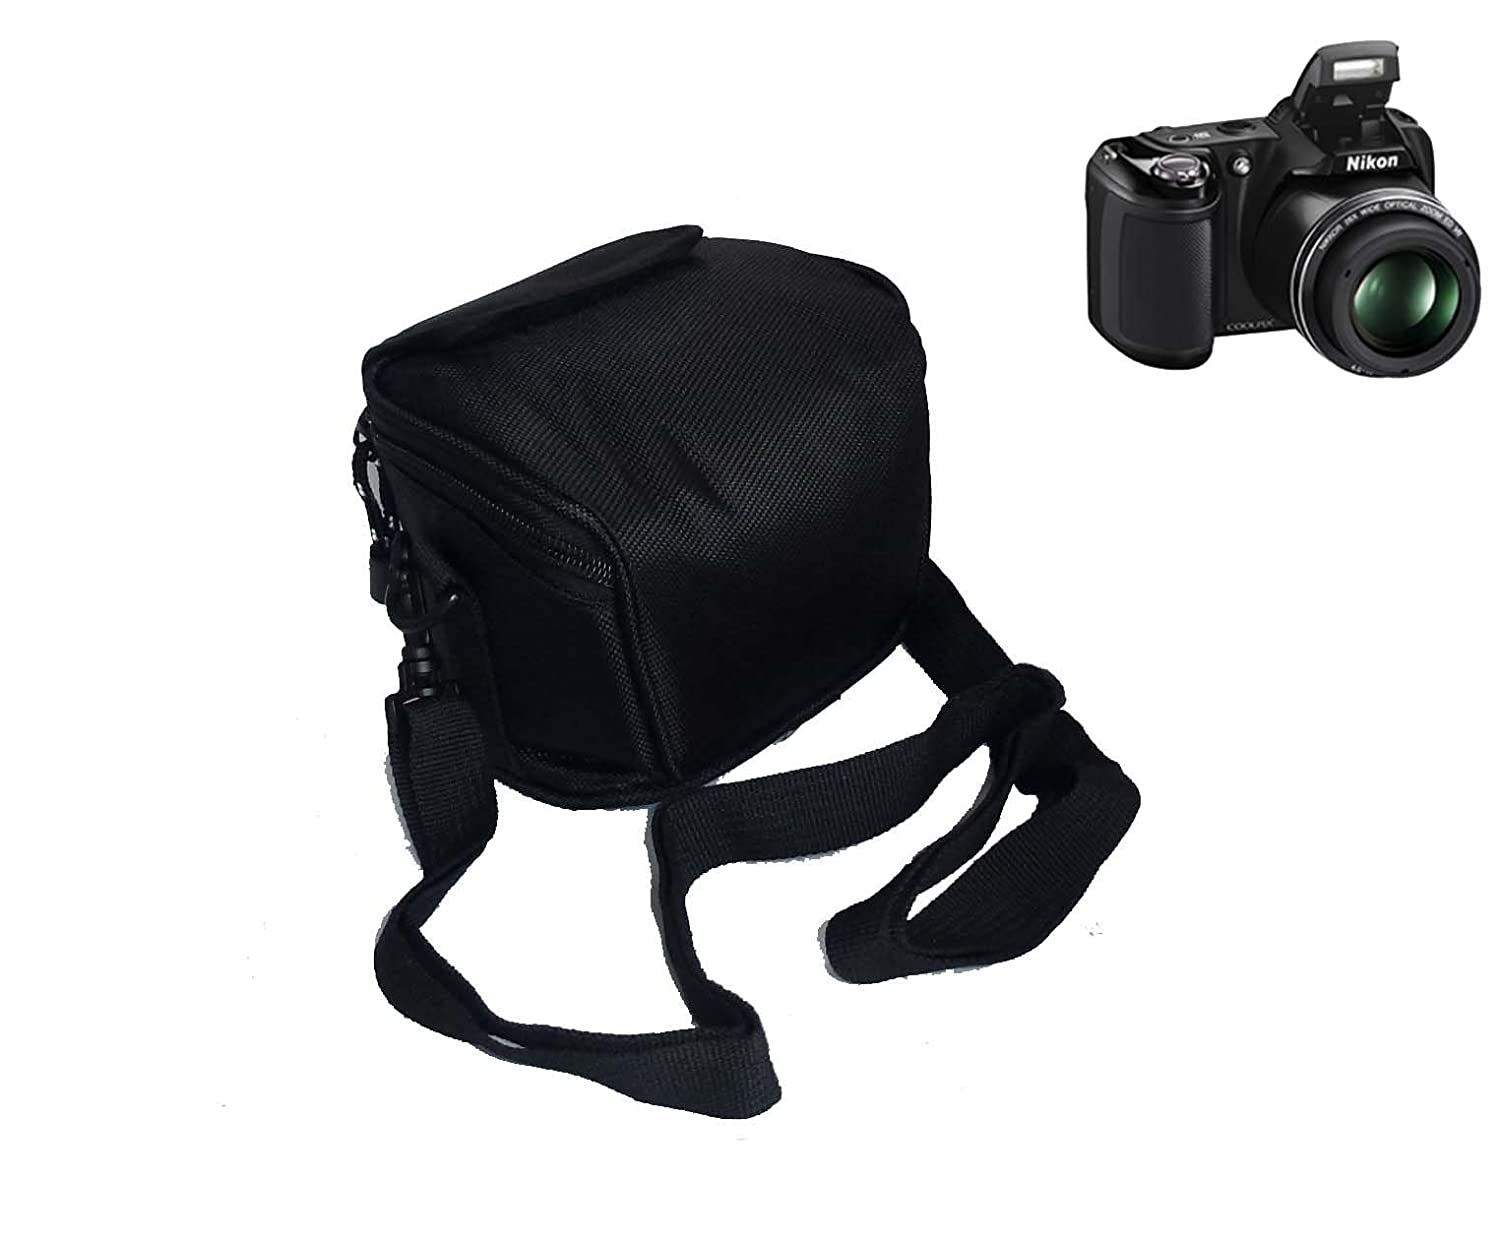 Camera Case Bag for Nikon Coolpix P7800 P7700 P7100 L820 L810 L620 ...